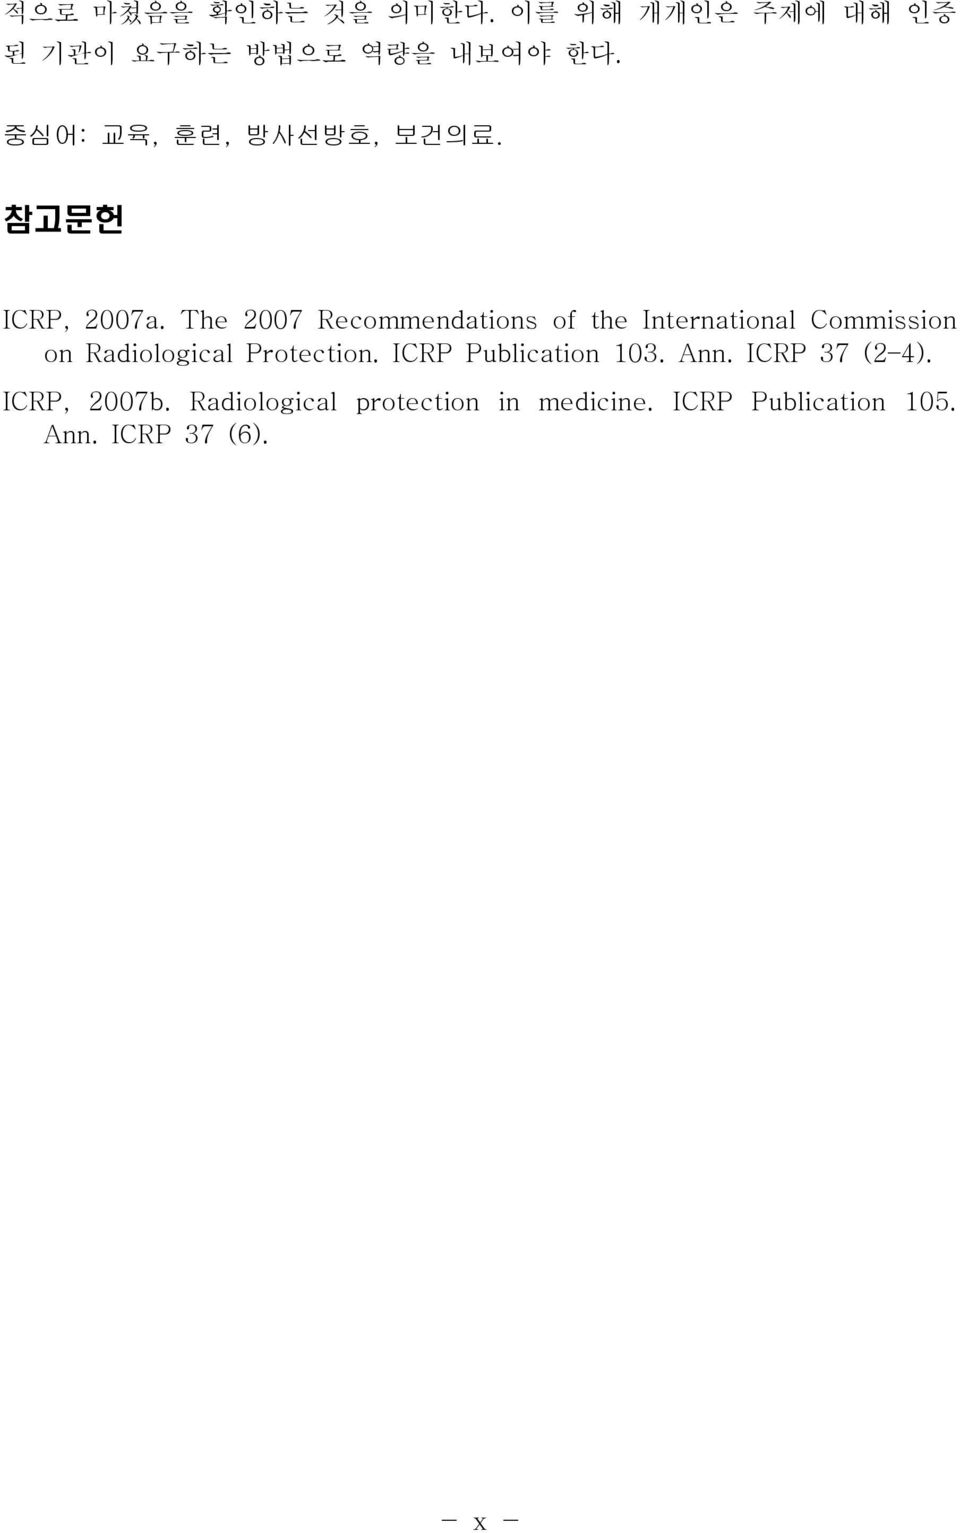 The 2007 Recommendations of the International Commission on Radiological Protection.